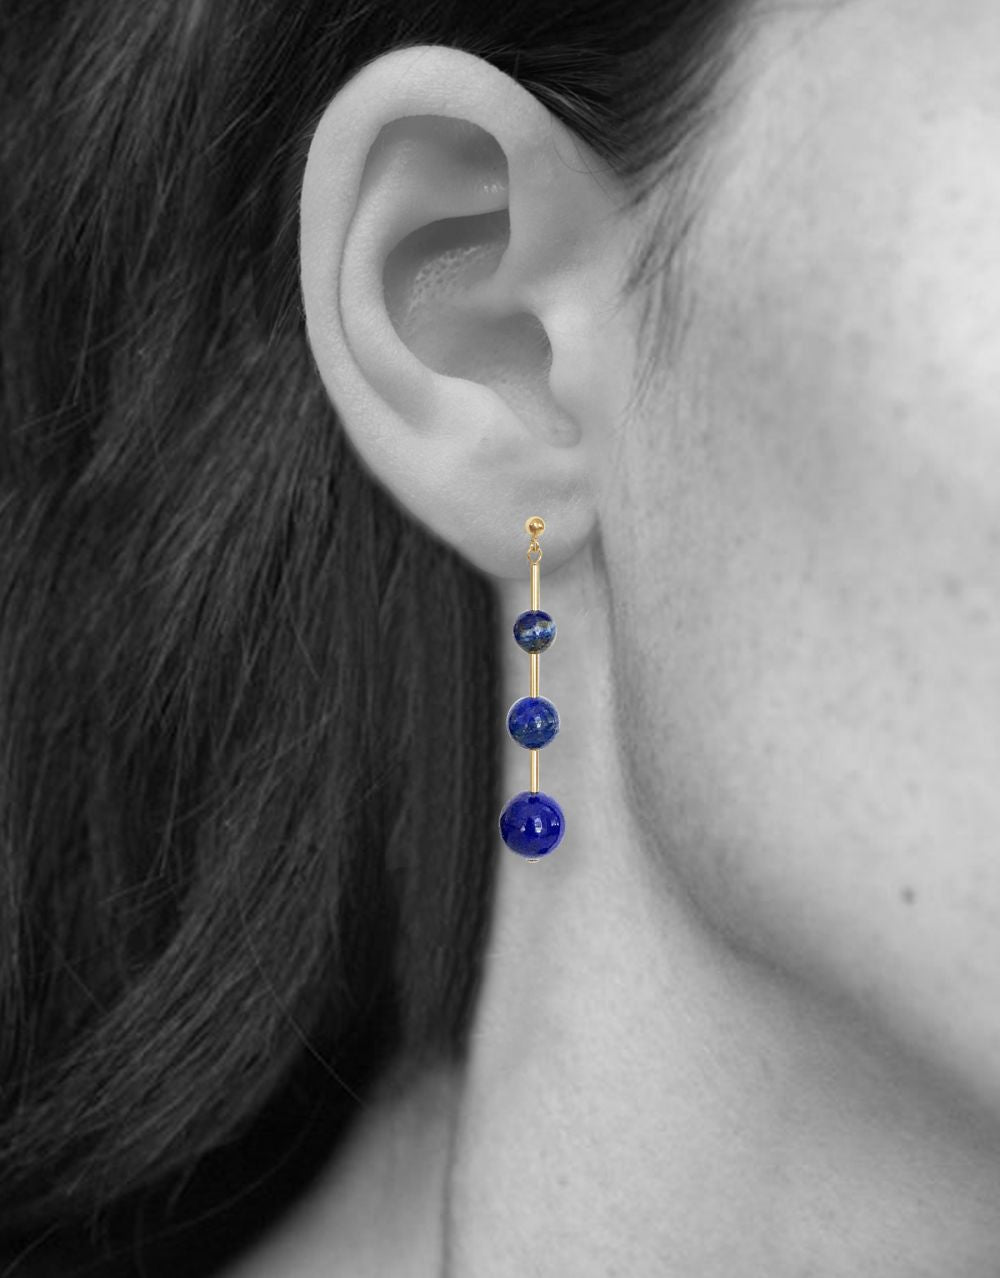 Umbra Triple Earrings<br /><i><small>14K Yellow Gold with Lapis Lazuli</small></i><br /> - Eddera